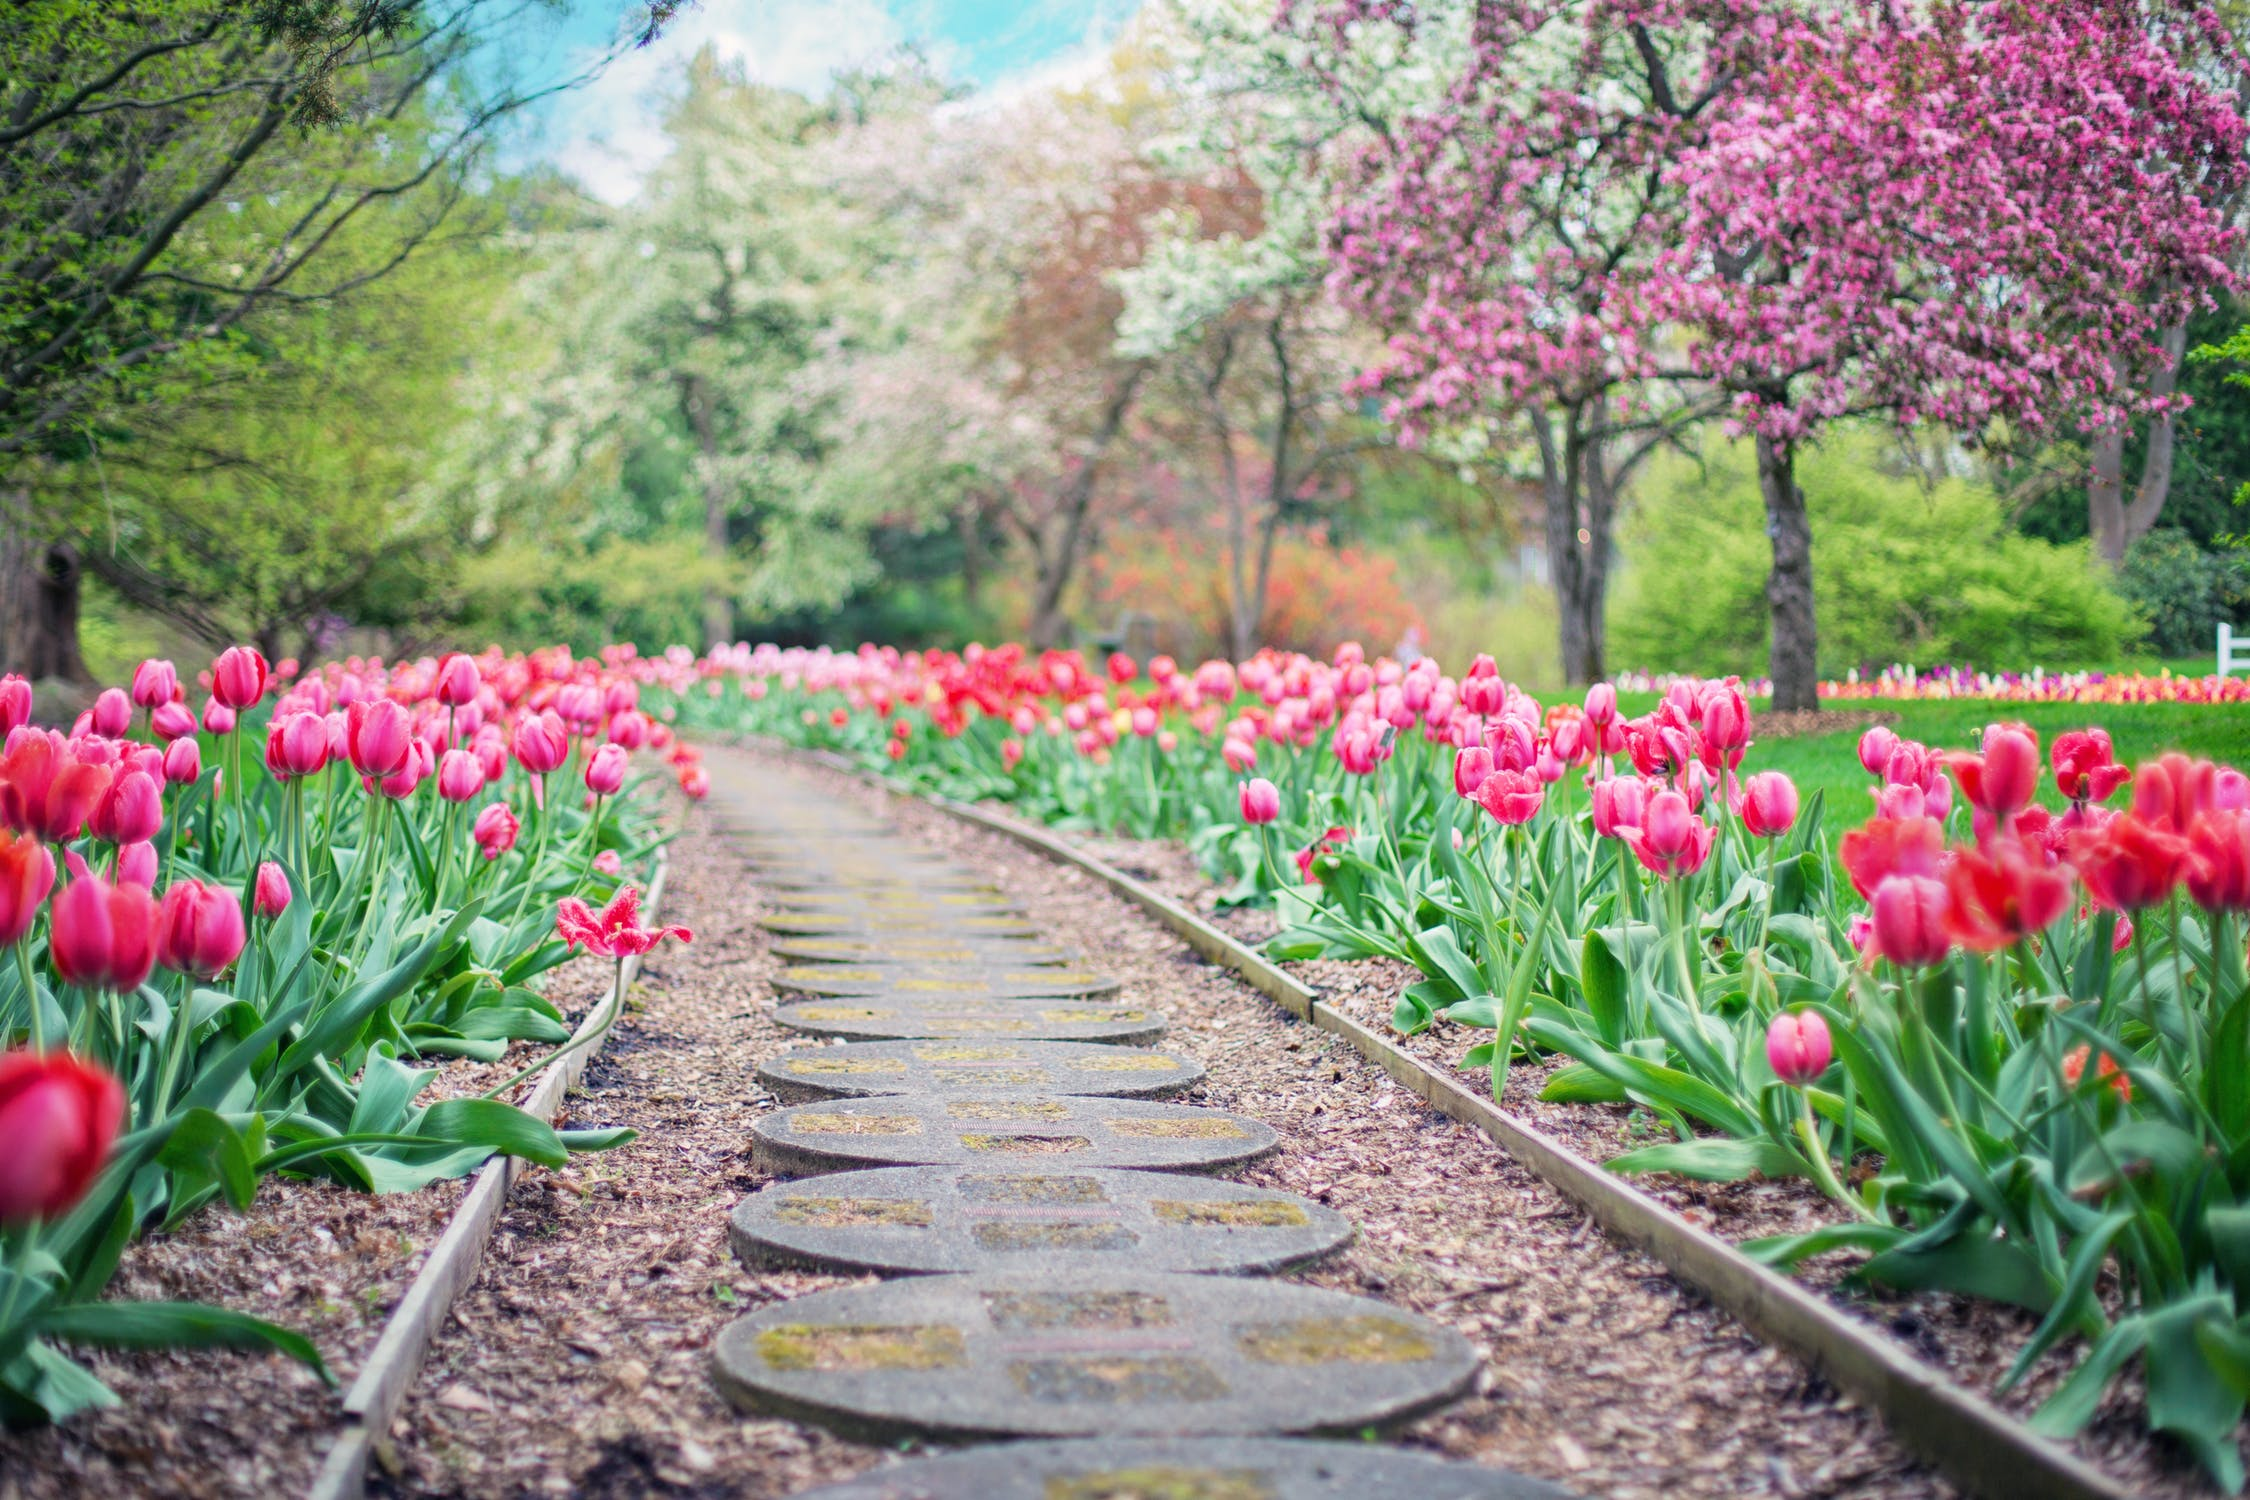 Path made of neatly laid stepping stones lined with pink tulips